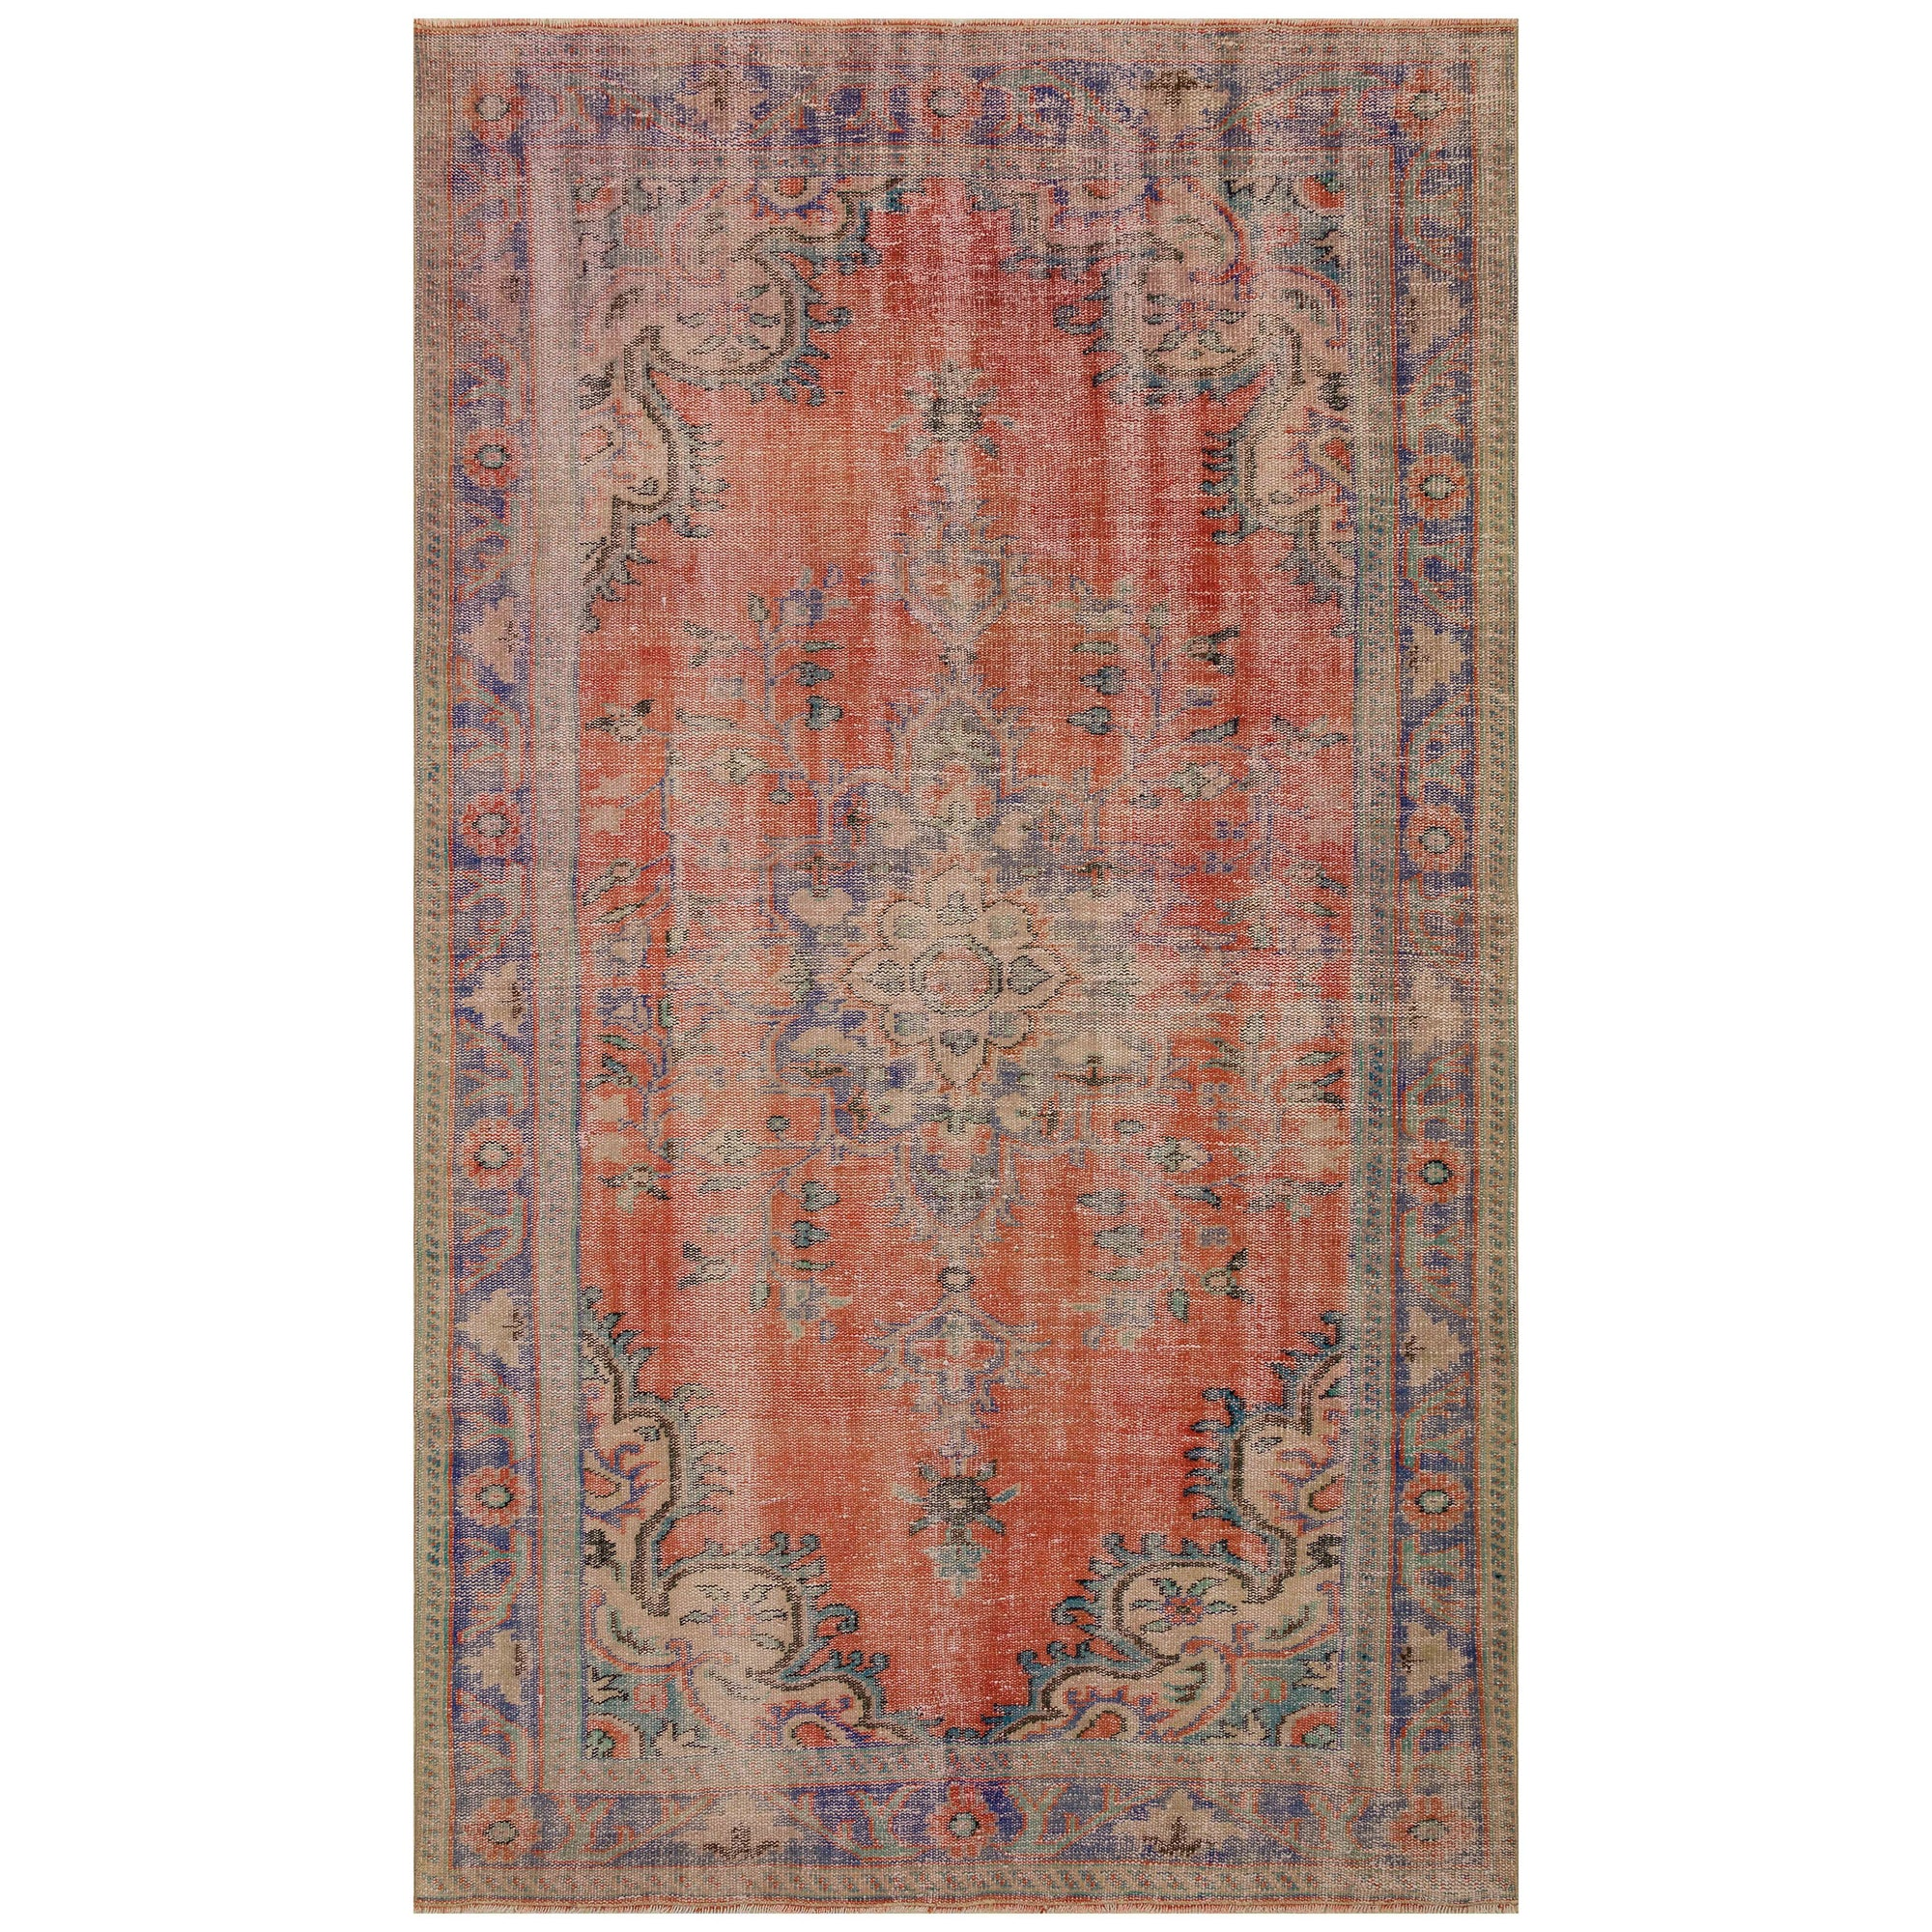 170 X 287 Anatolian Hand Knotted Carpet Vintage Style 60N2761 -  170 × 287 سجادة أناضولية معقودة يدويًا - Shop Online Furniture and Home Decor Store in Dubai, UAE at ebarza